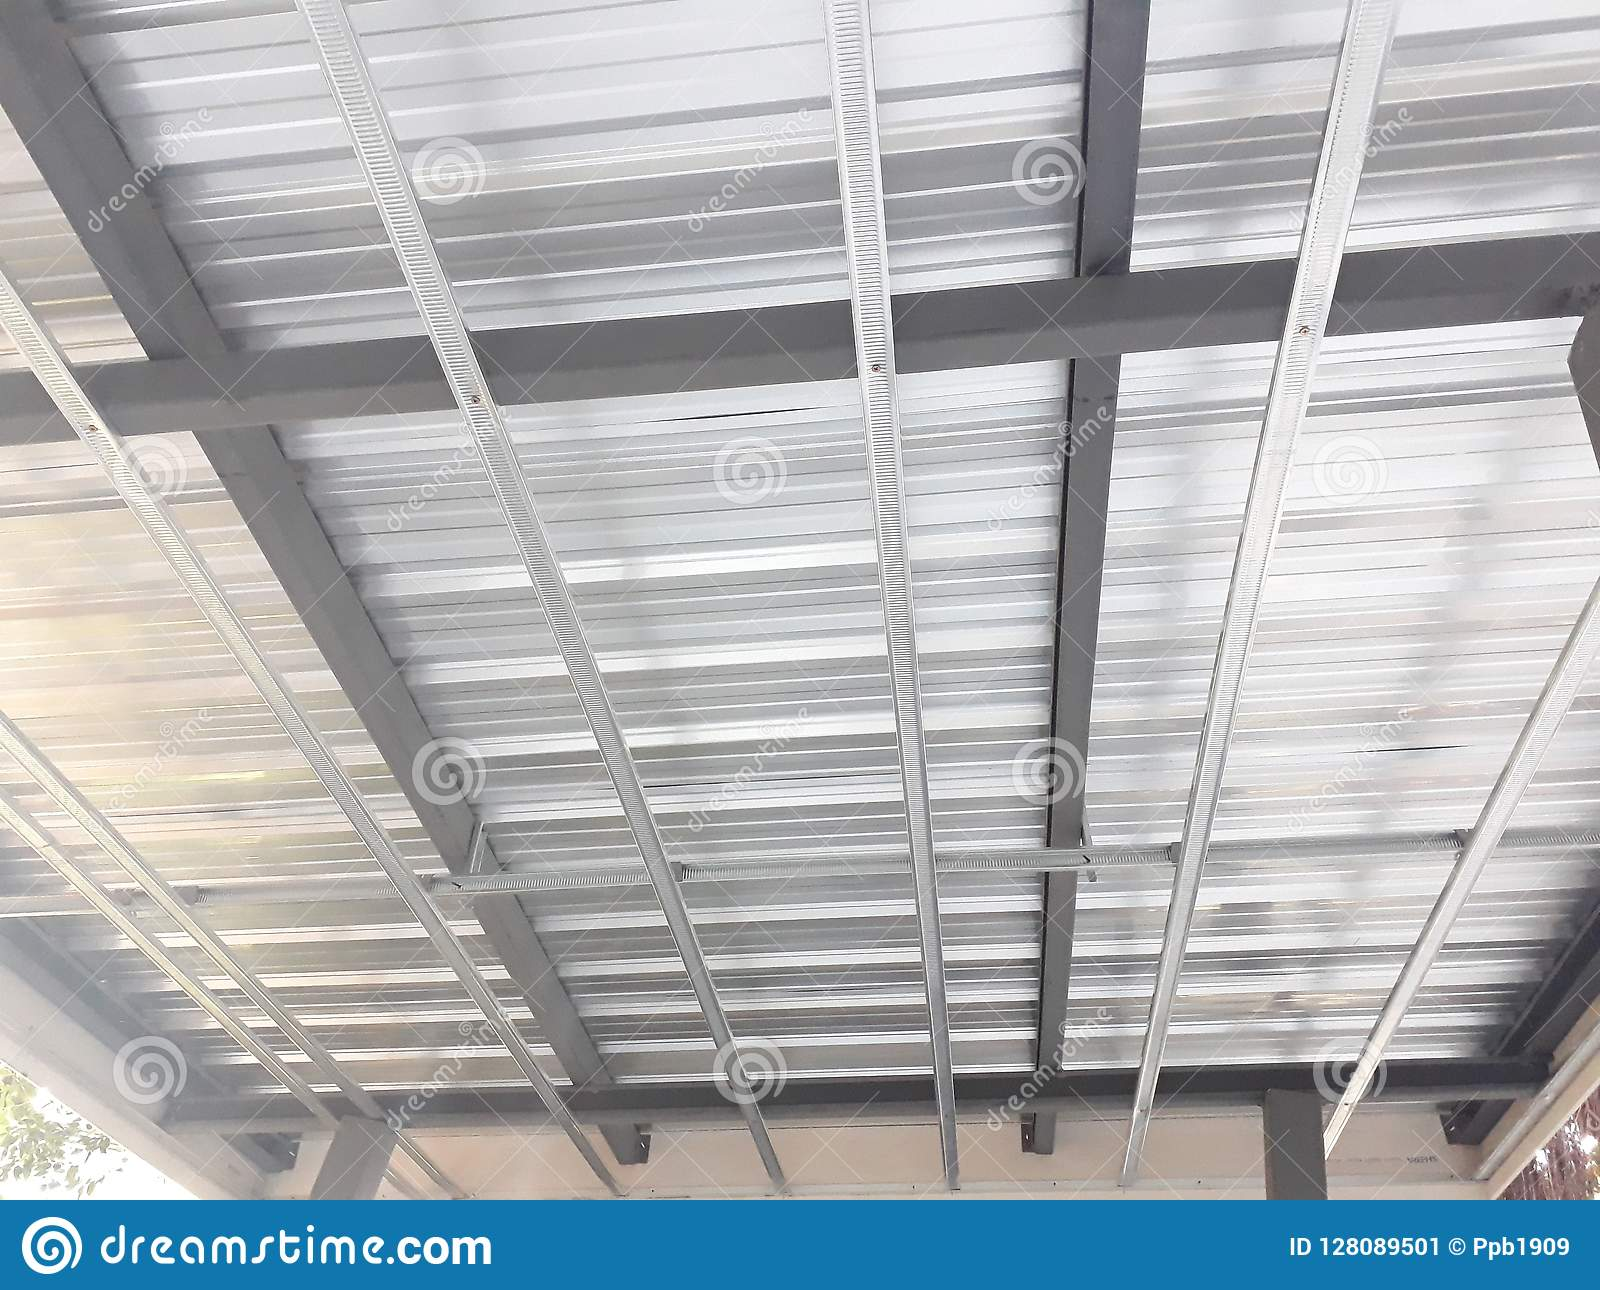 Galvanized Steel Roofing Sheet Stock Image Image Of Design Building 128089501